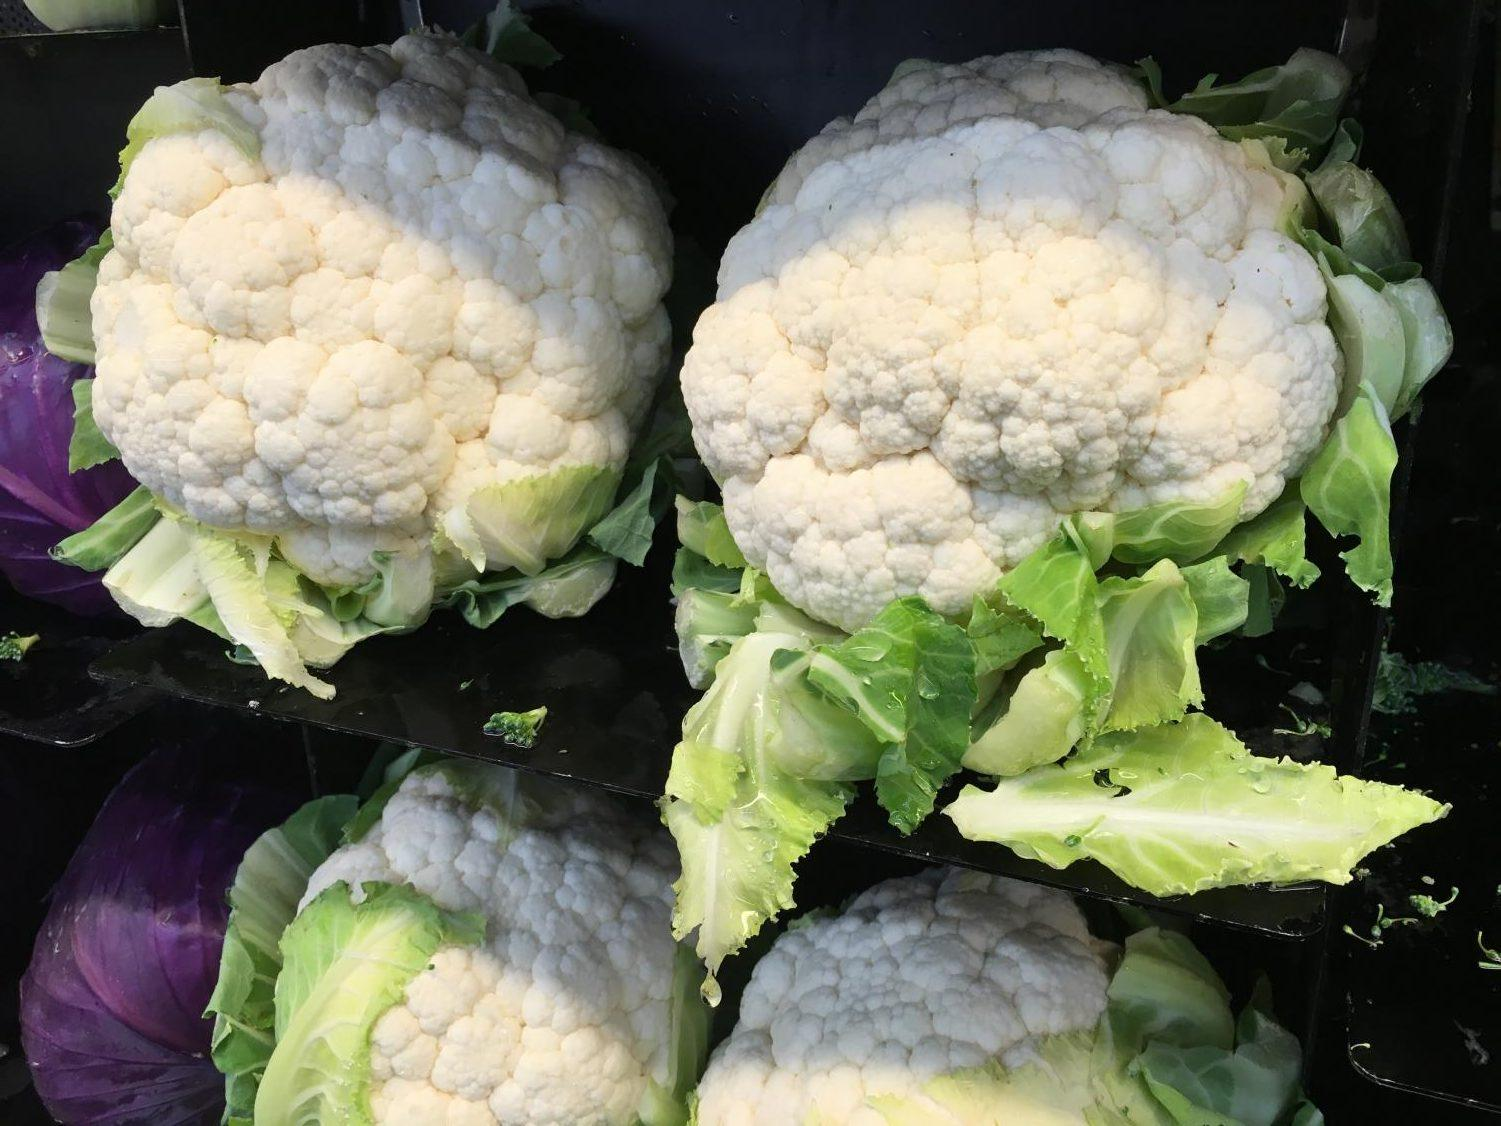 Using fresh cauliflower is much better than pre cut, because of its freshness. A food processor makes using this ingredient very doable.